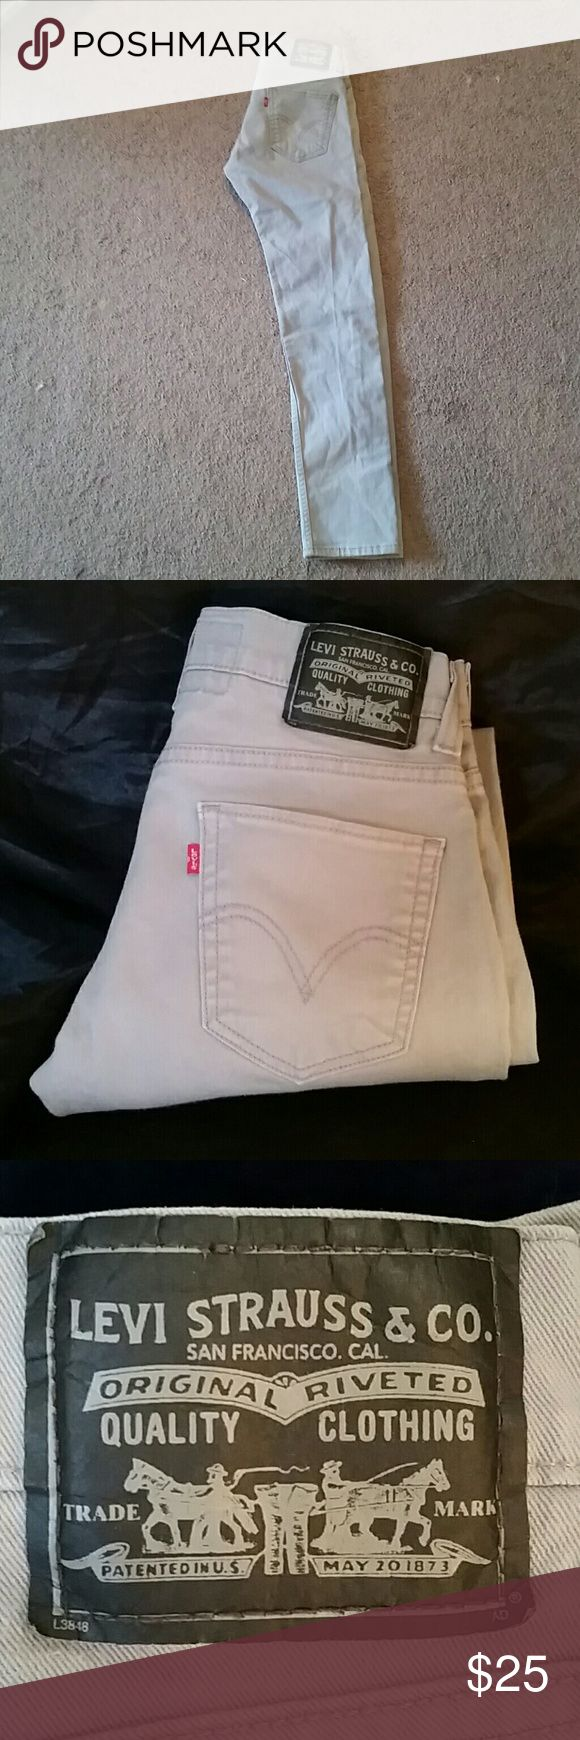 Levis 511 grey skinny jeans Men's Brand new pair of Levis without tags. Never worn or washed. Skinny jeans. Levi's Jeans Skinny